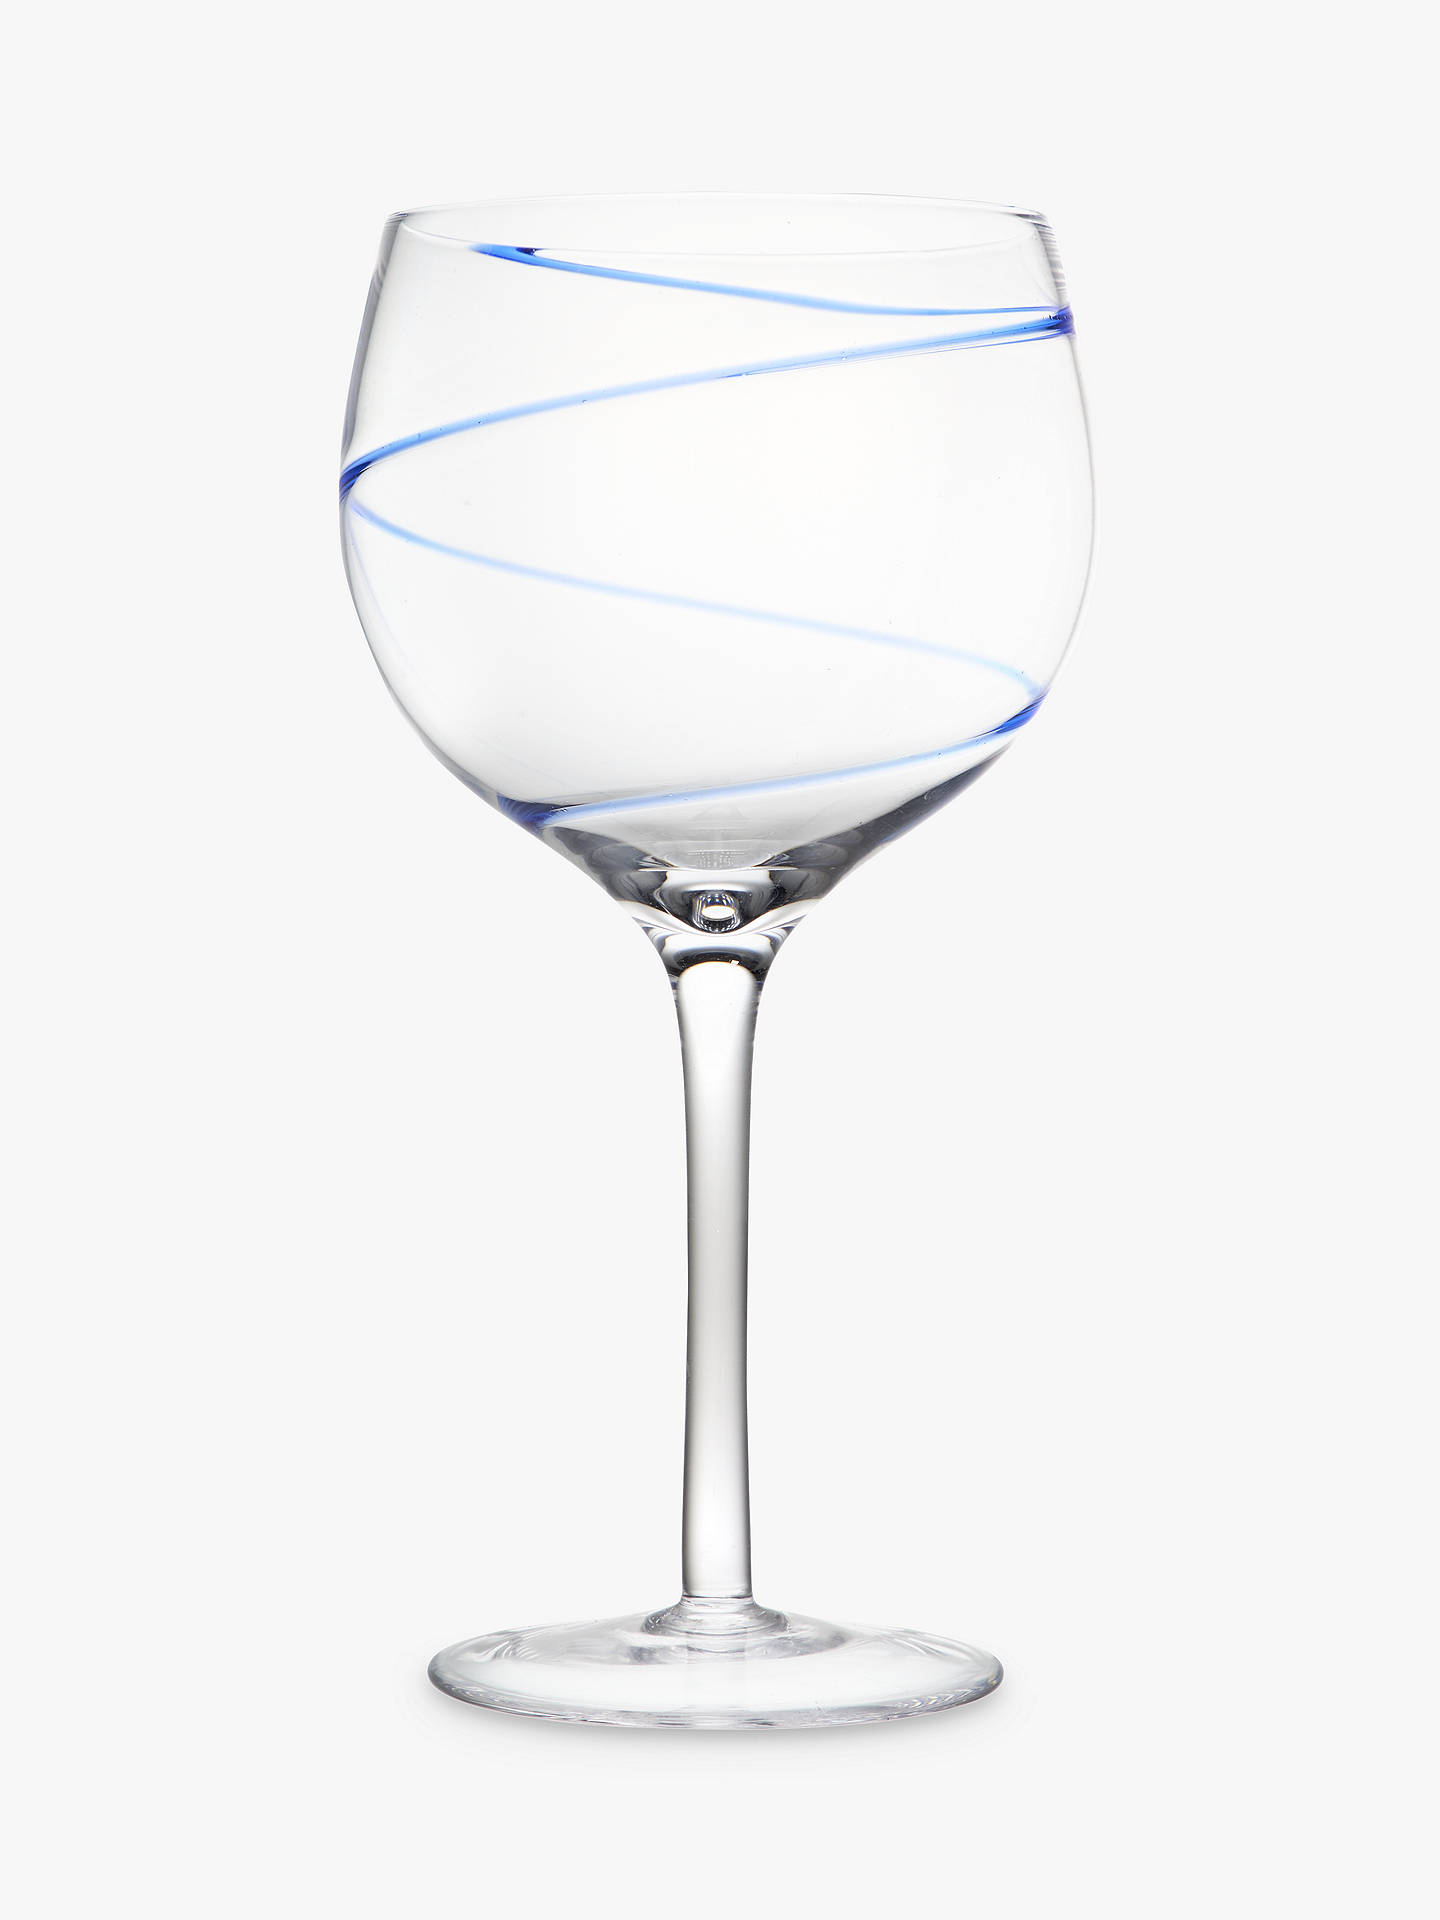 Buy John Lewis & Partners Coastal Gin Cocktail Glasses, Assorted, 650ml, Set of 4 Online at johnlewis.com